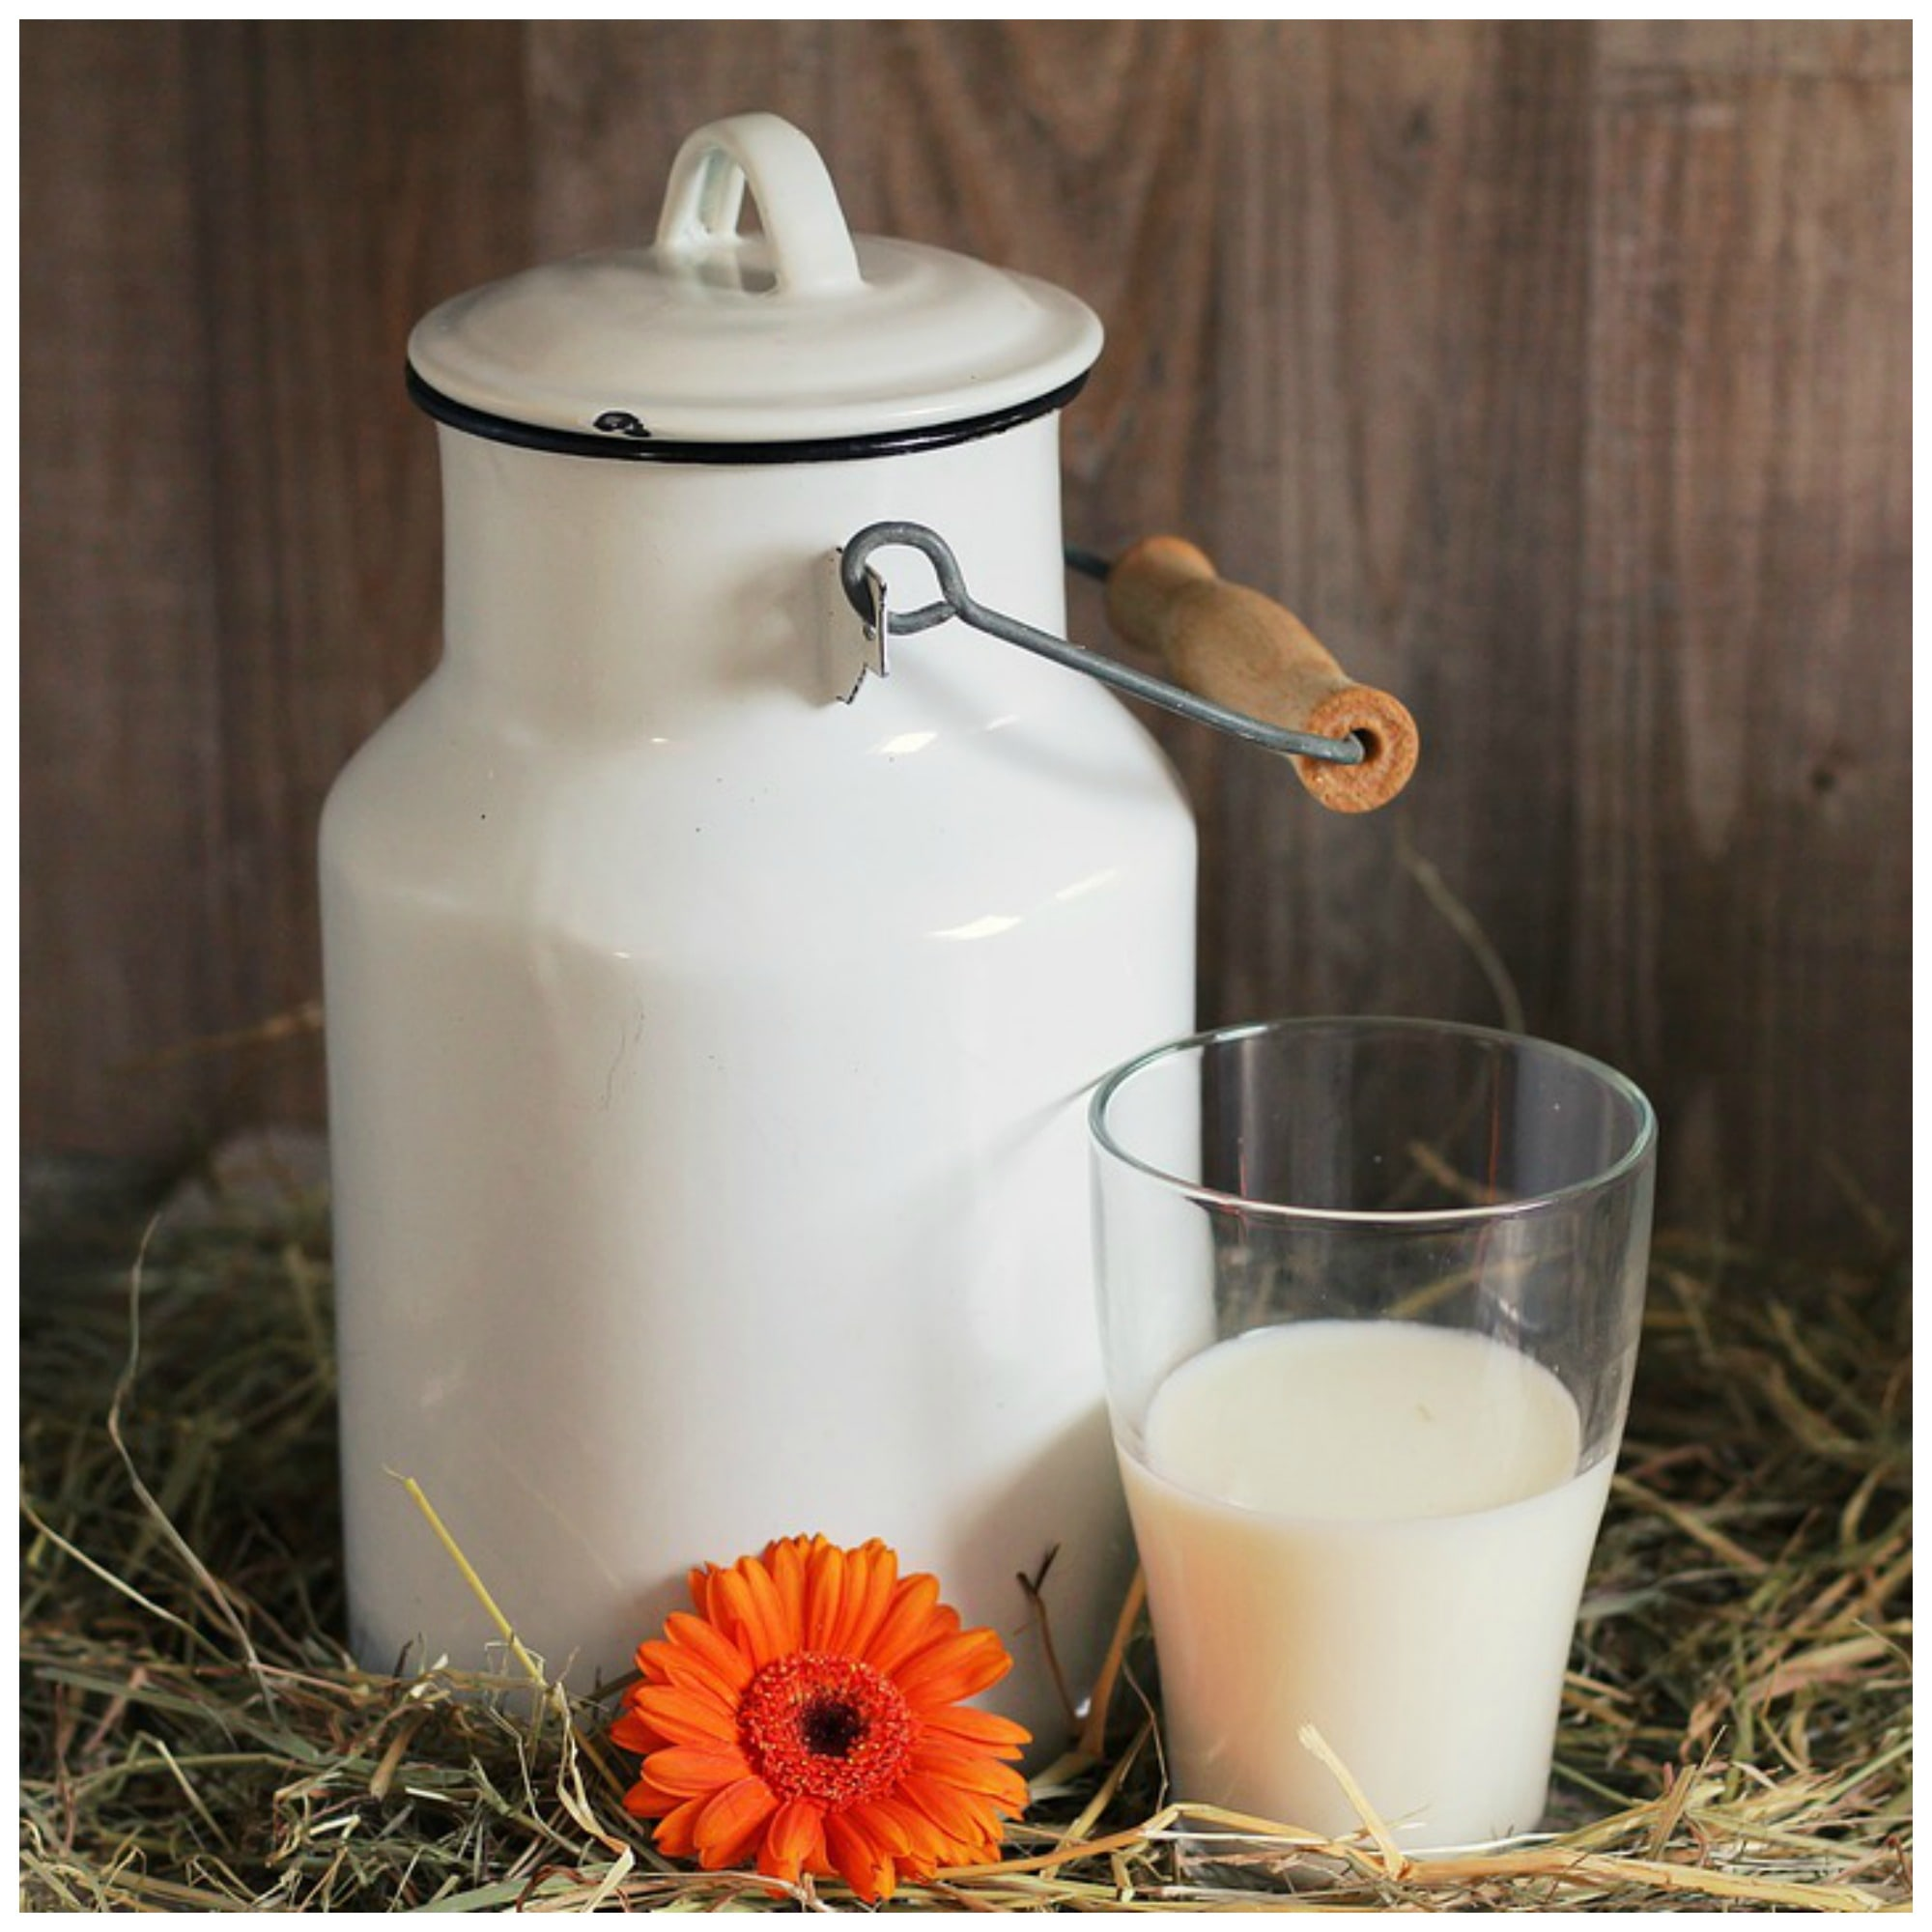 What Happens If You Stop Drinking Milk?